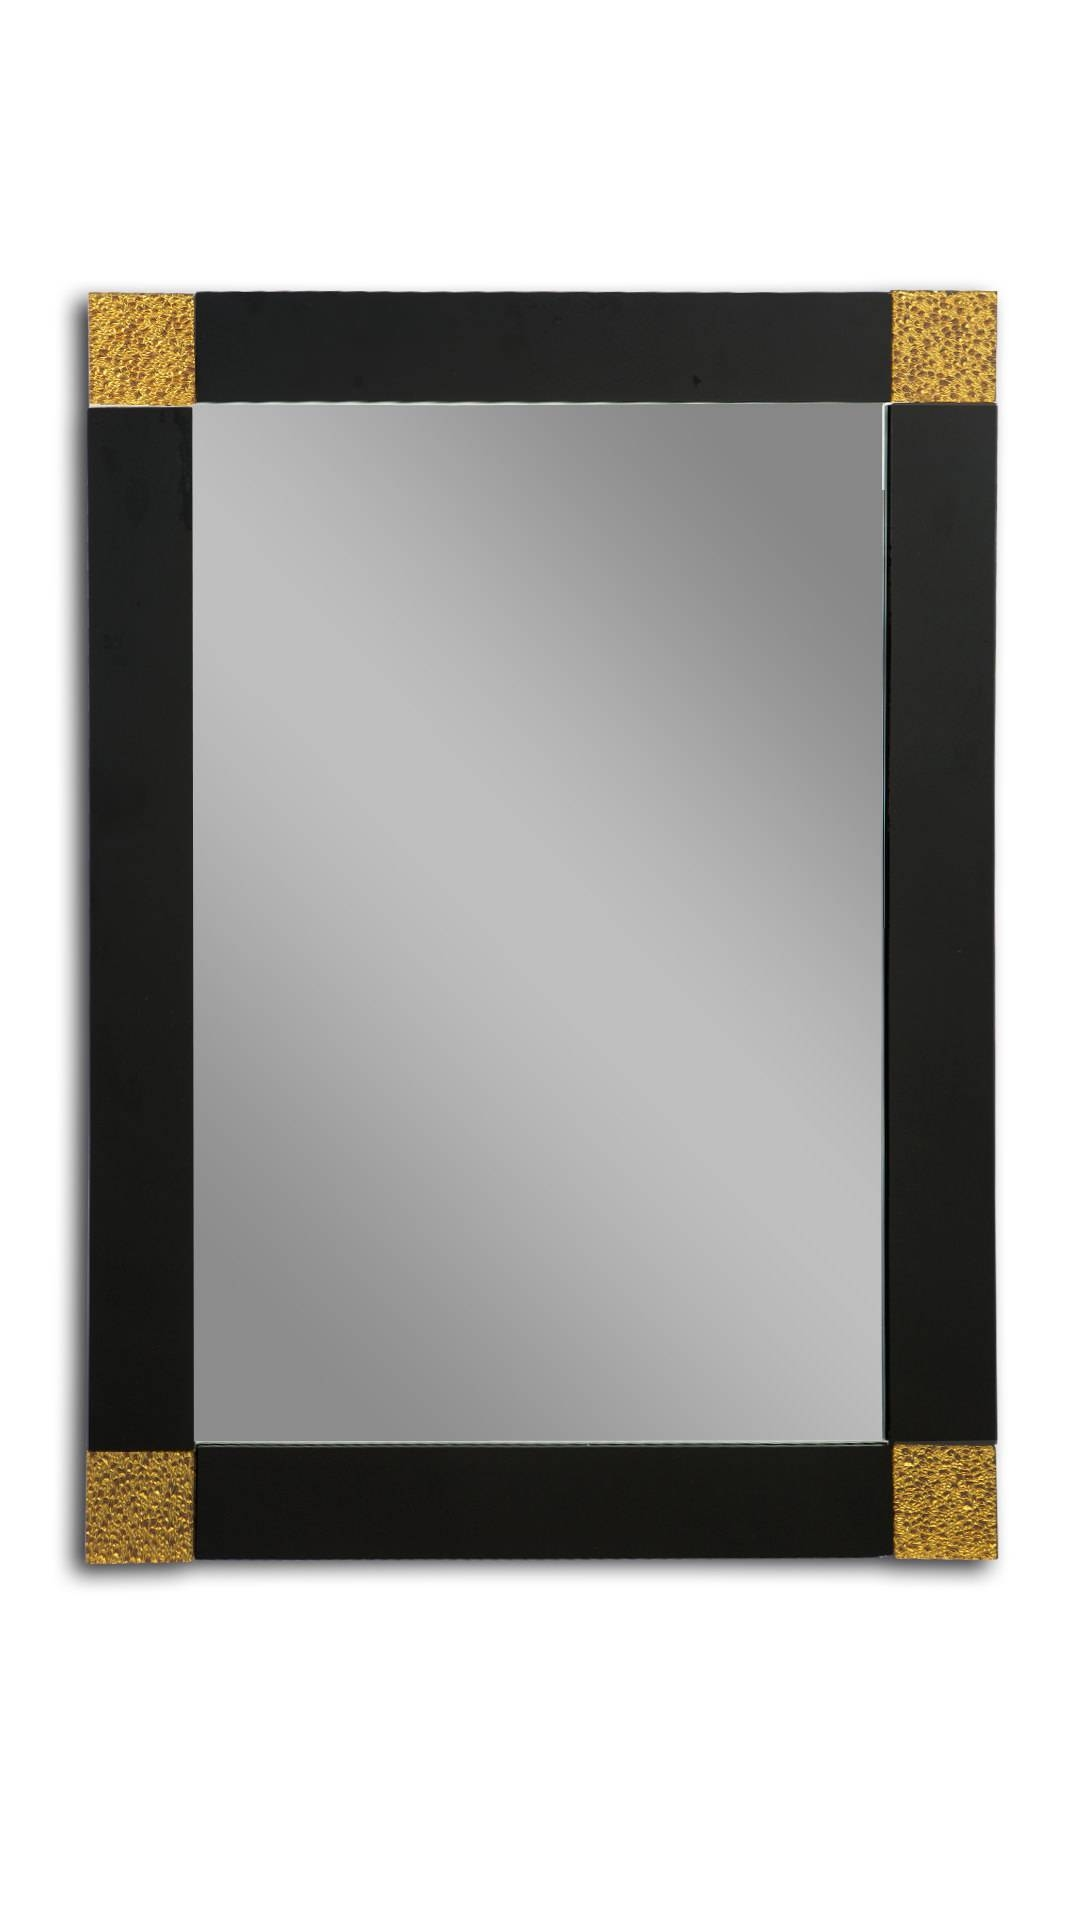 Black And Gold Rectangle Wall Mirror pertaining to Black And Gold Wall Mirrors (Image 8 of 15)